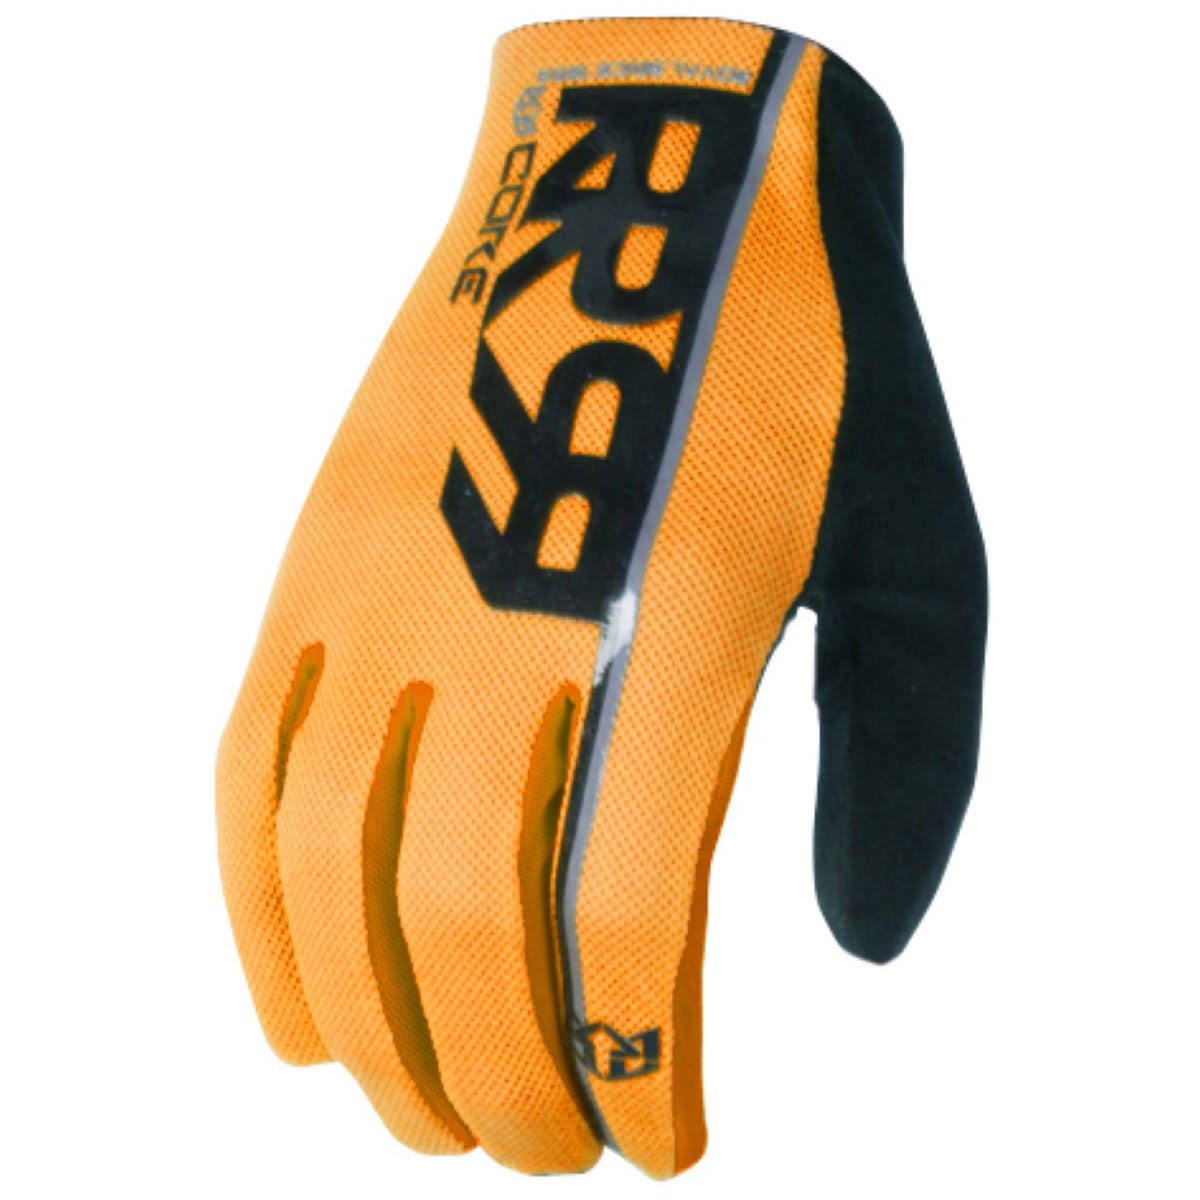 Royal Racing Core Gloves, Amber/Black, Large